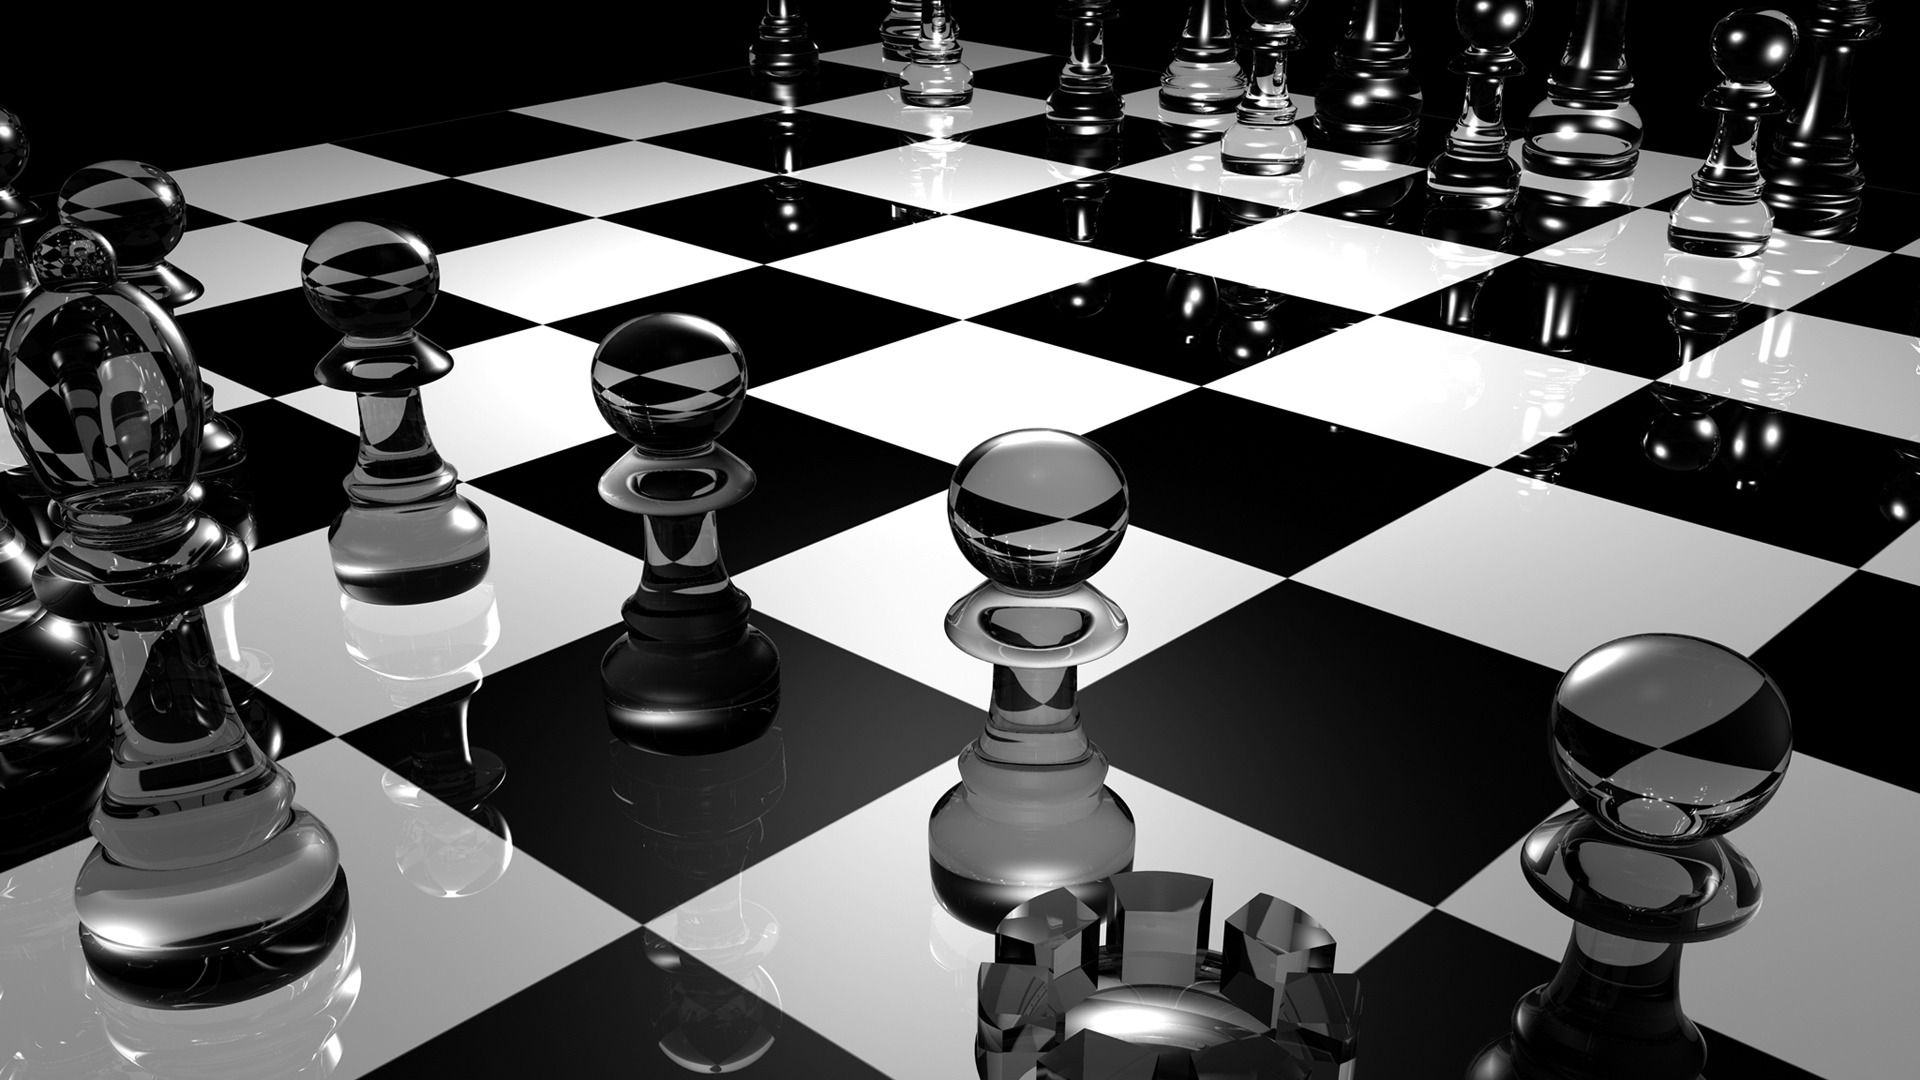 1080p Hd Photos 3d Black And White Wallpaper Black Wallpaper Chess